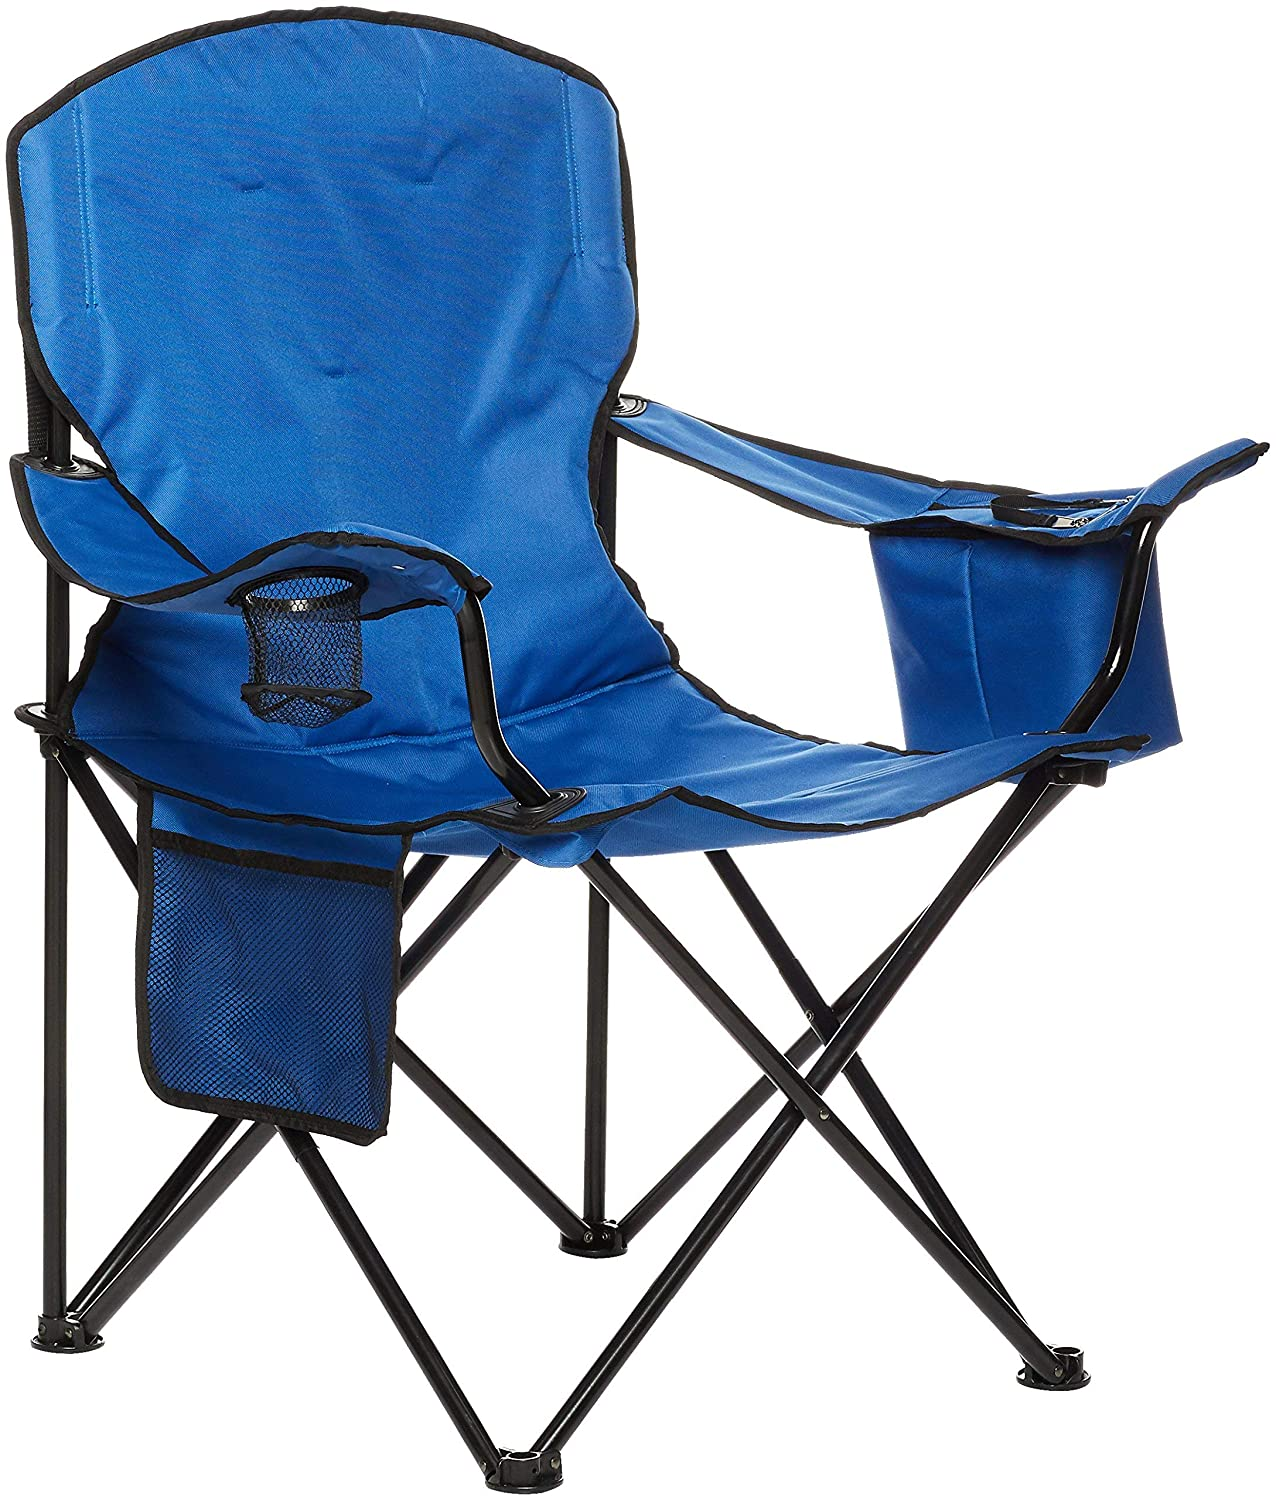 Amazon.com : AmazonBasics Camping Chair with Cooler, Blue (Padded ...